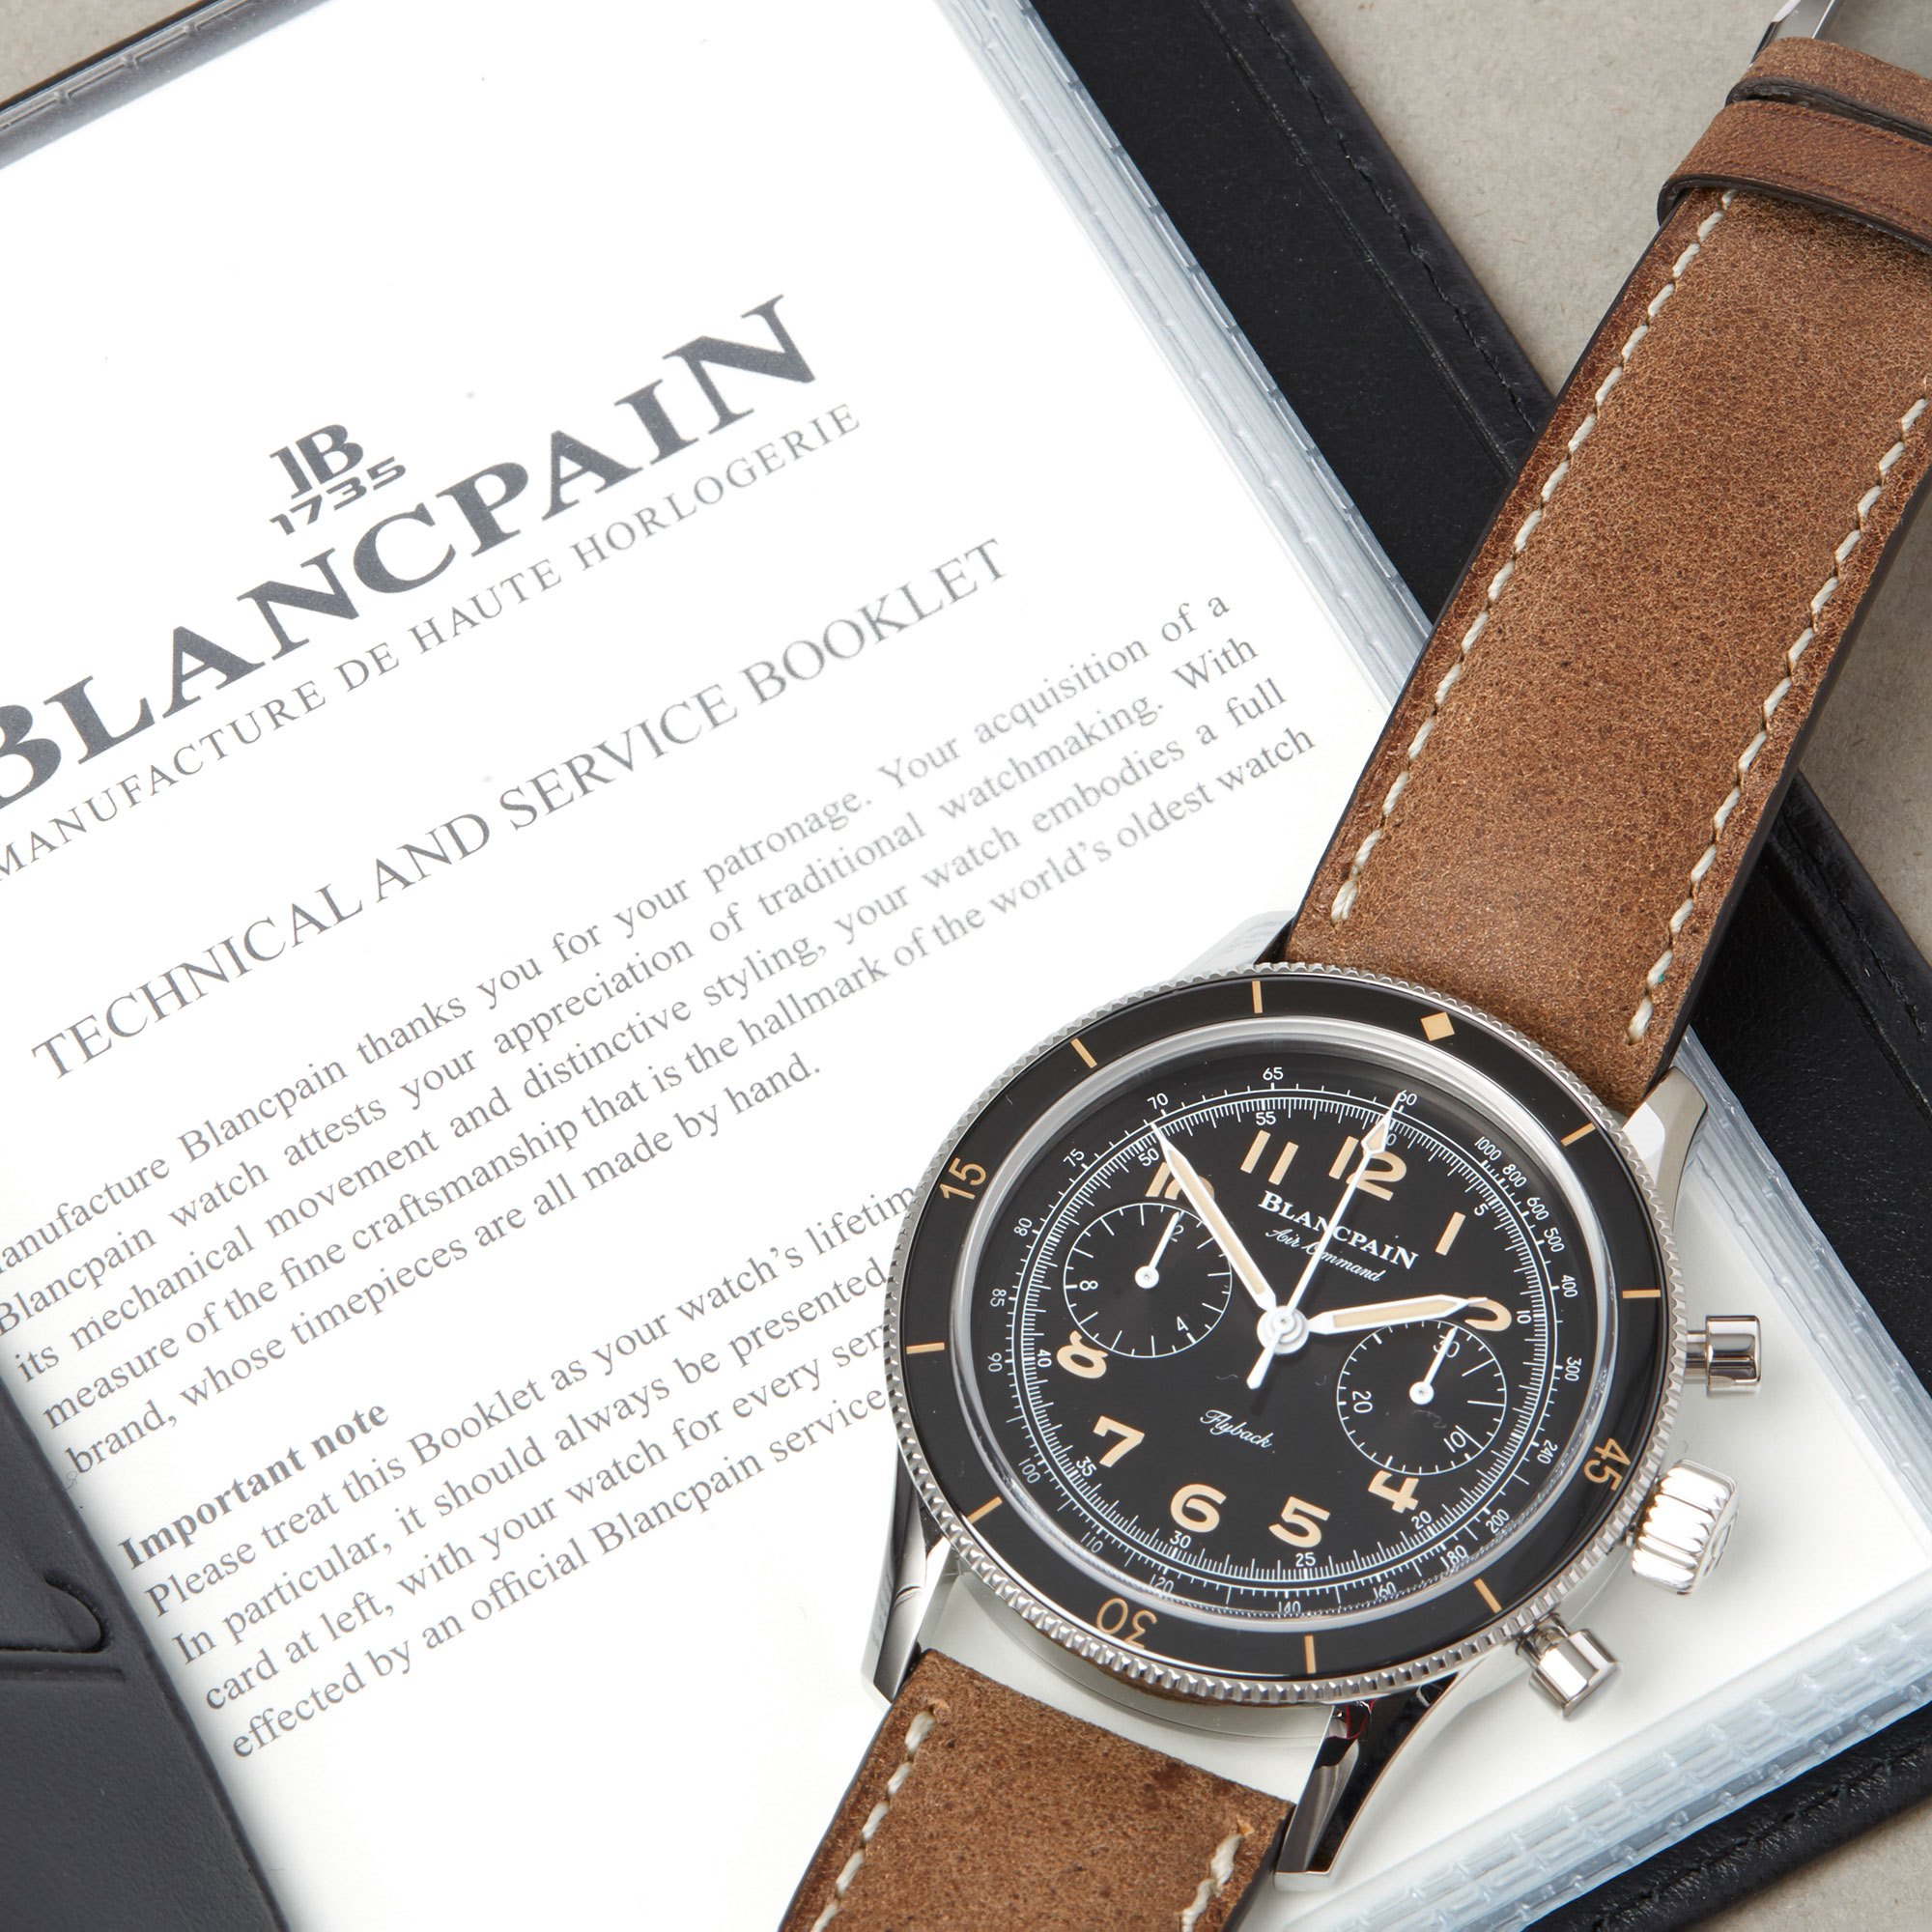 Blancpain Air Command Air Command Flyback Chronograph Ltd Edition Unworn Stainless Steel - AC01 1130 63A Stainless Steel AC01 1130 63A